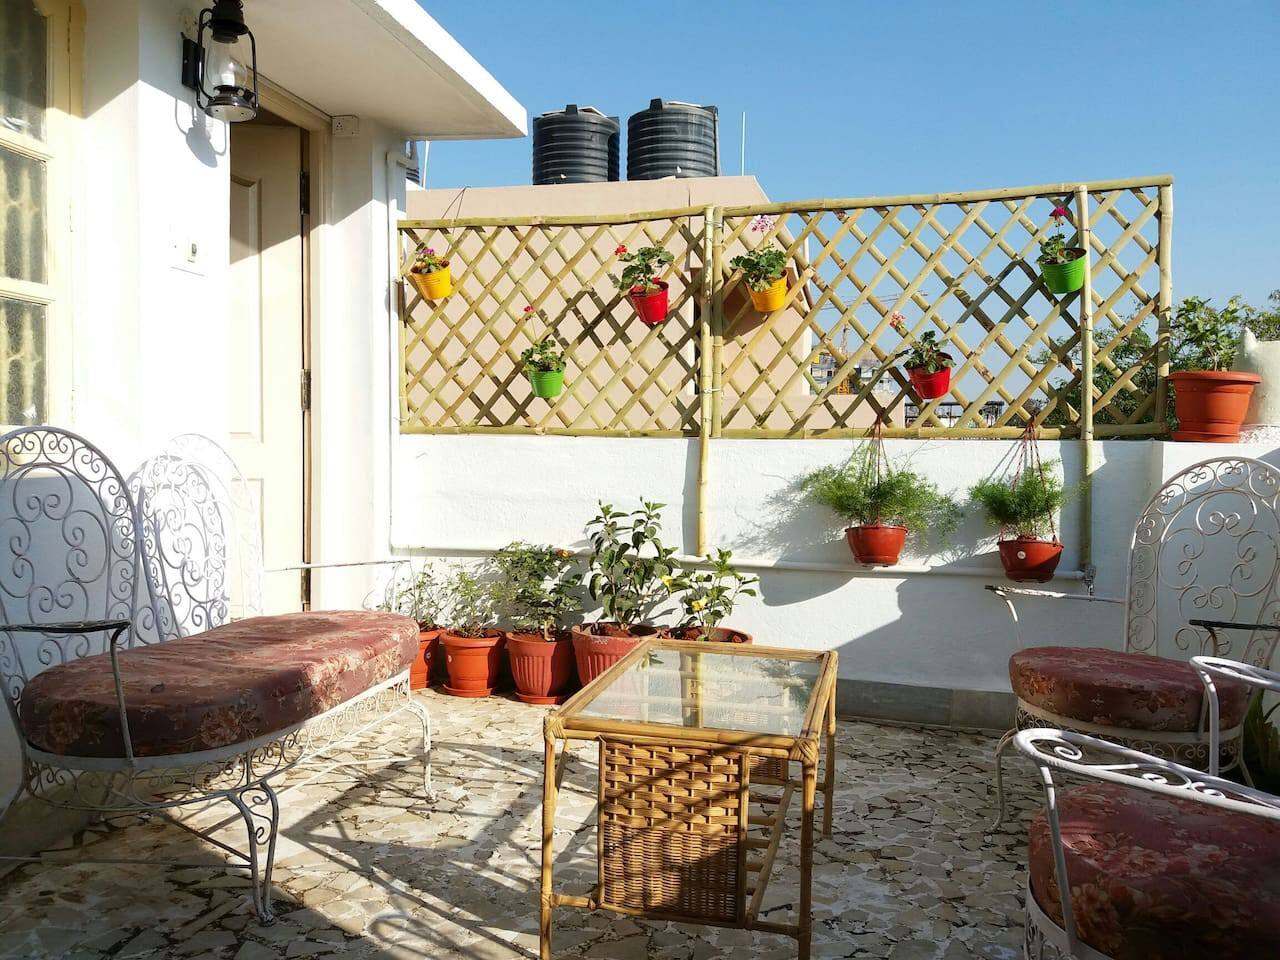 Garden terrace for fresh air and sunlight to enjoy Bangalore weather. Perfect place to have morning tea and to read newspaper or to work